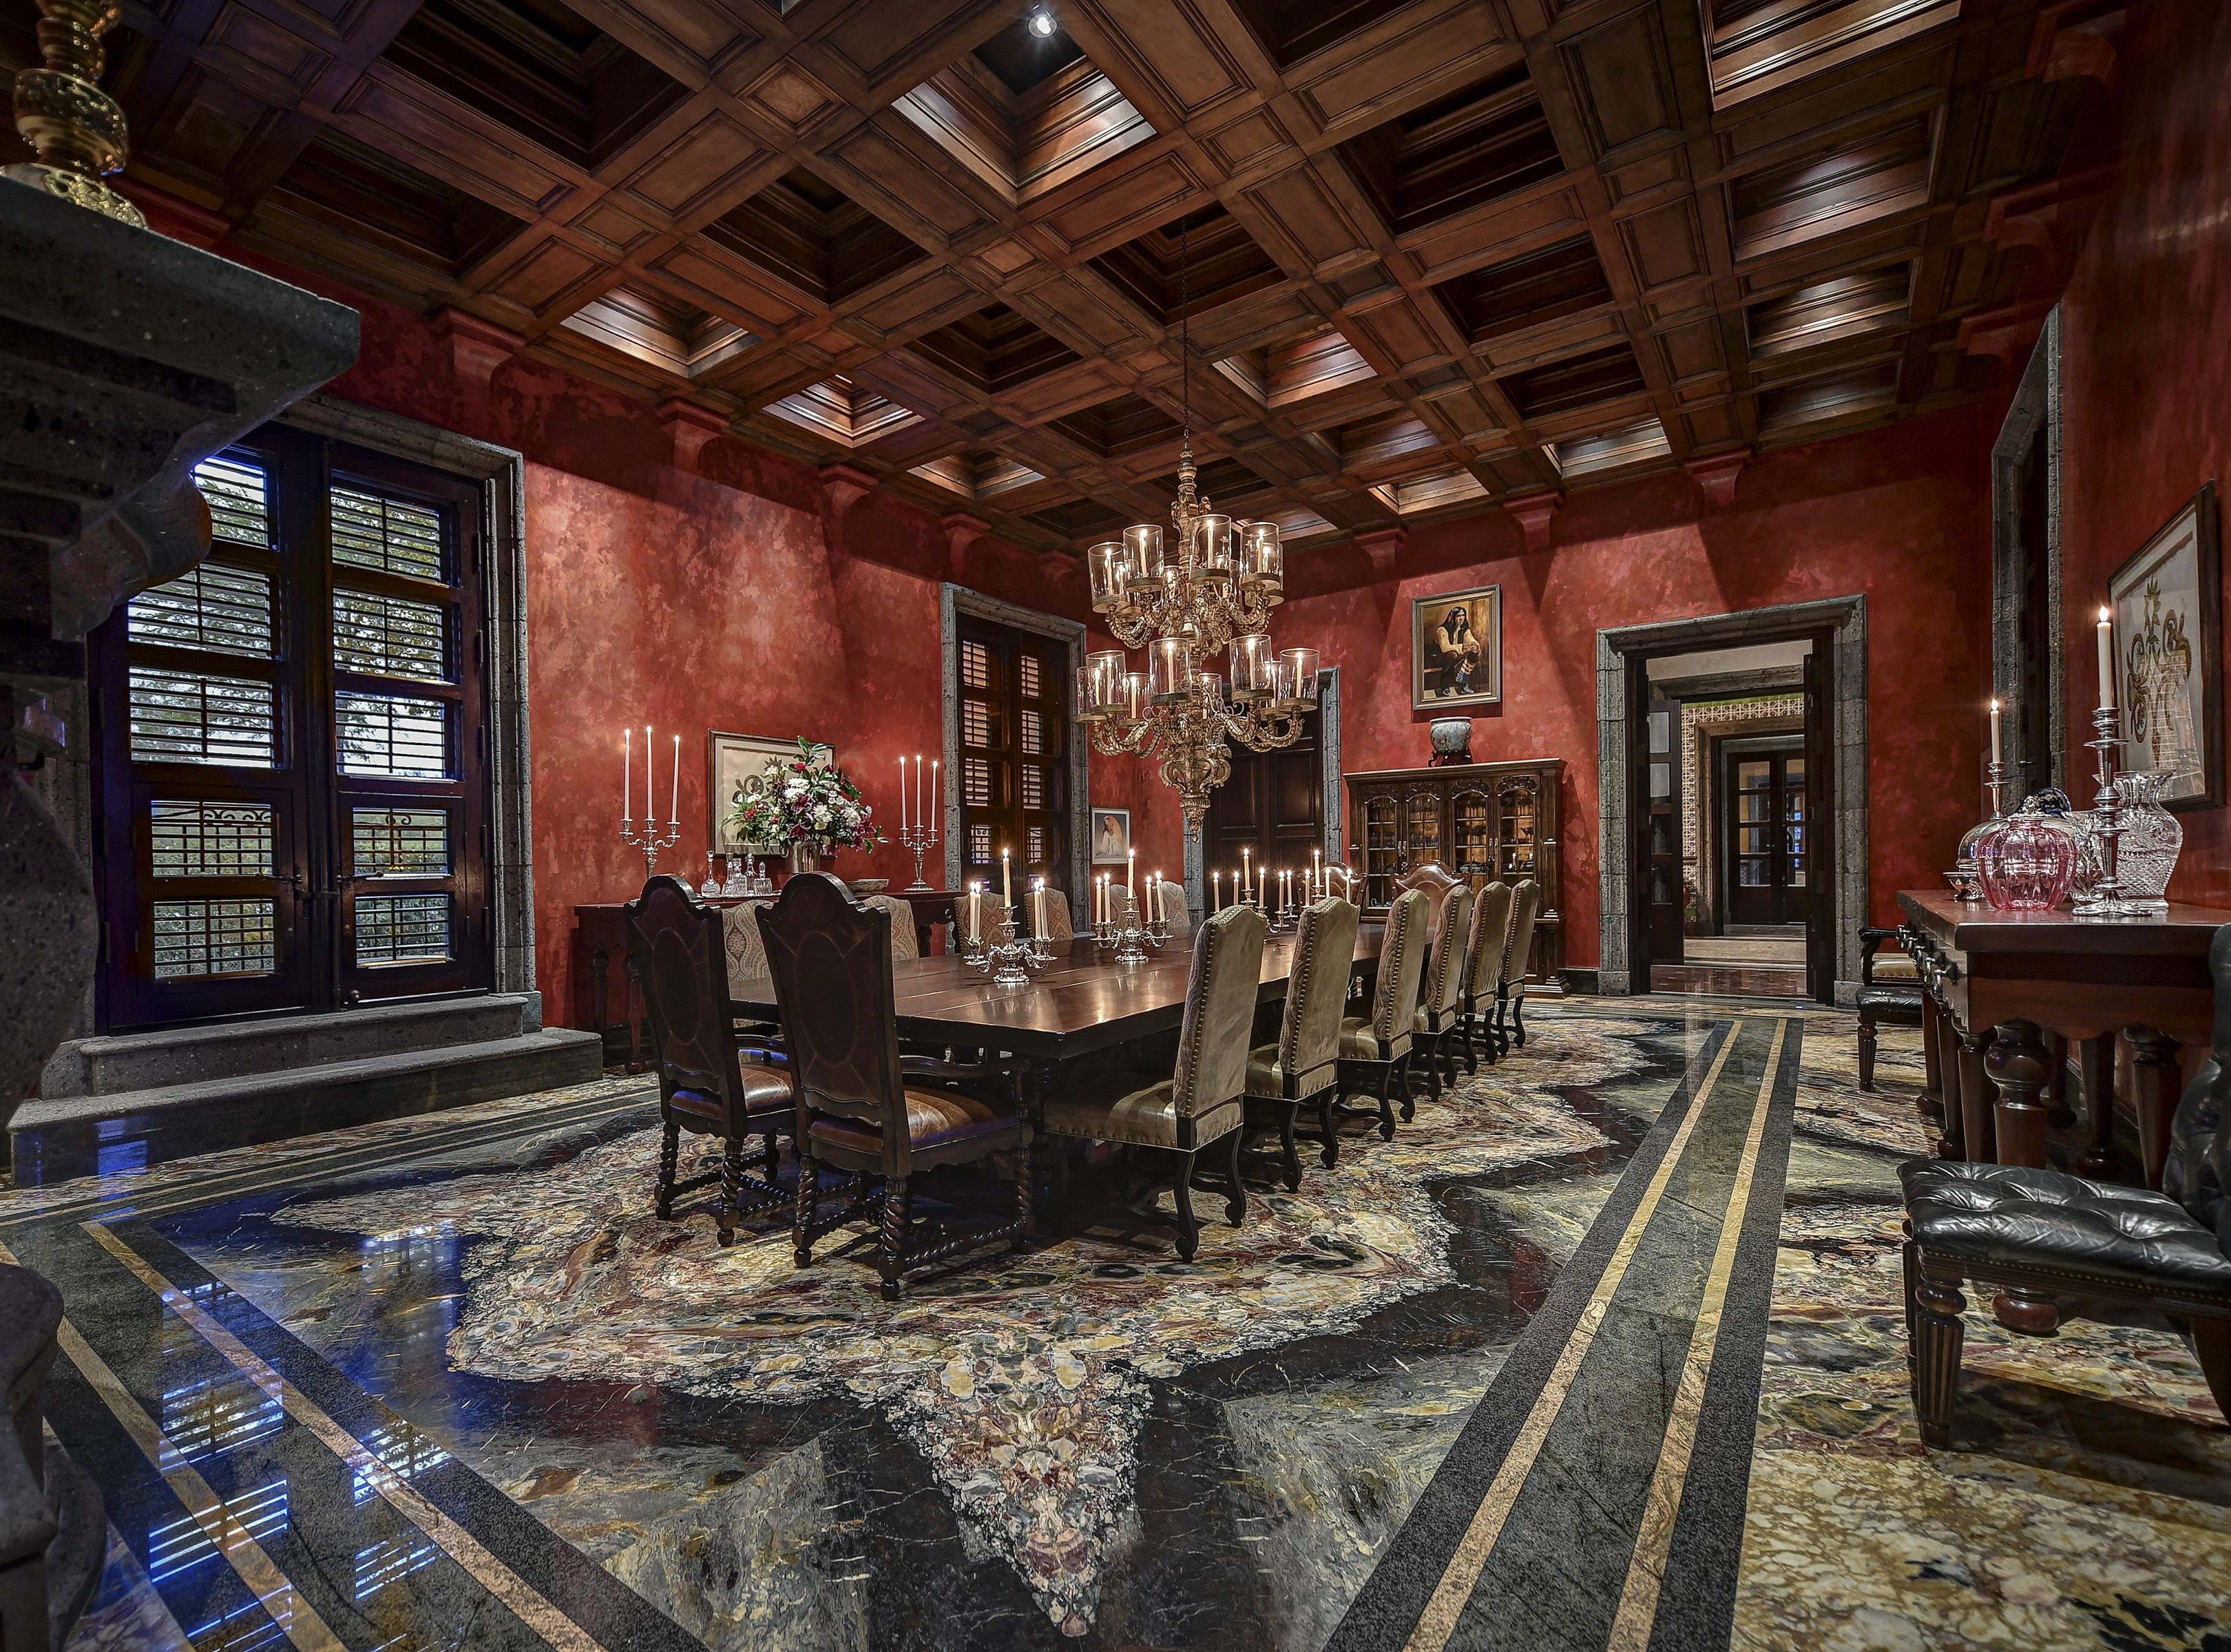 The Paradise Valley estate, sold by Christopher Leclair Daugherty, includes a luxurious formal dining room with 18-foot coffered ceilings and candle chandeliers.